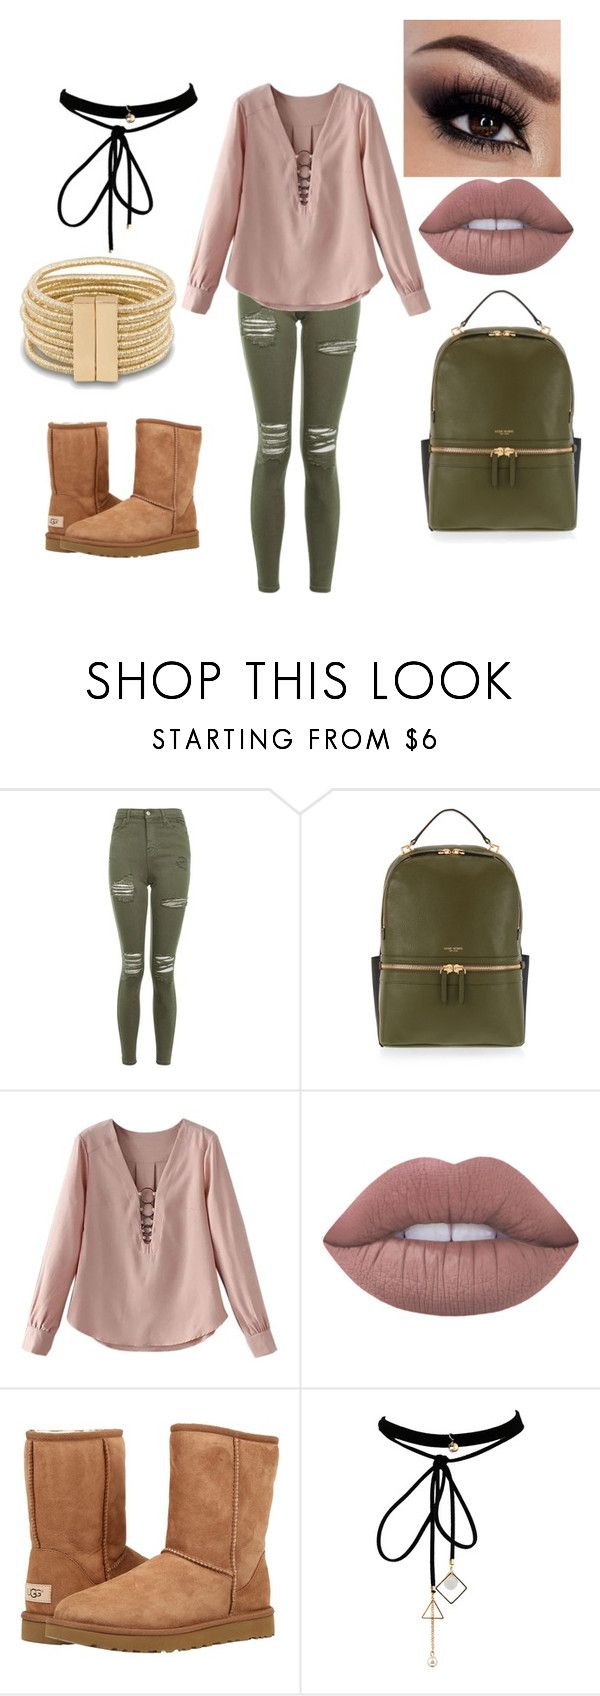 """""""Pink and Olive Green"""" by albajaria23 ❤ liked on Polyvore featuring Topshop, Henri Bendel, Lime Crime, UGG Australia and WithChic"""